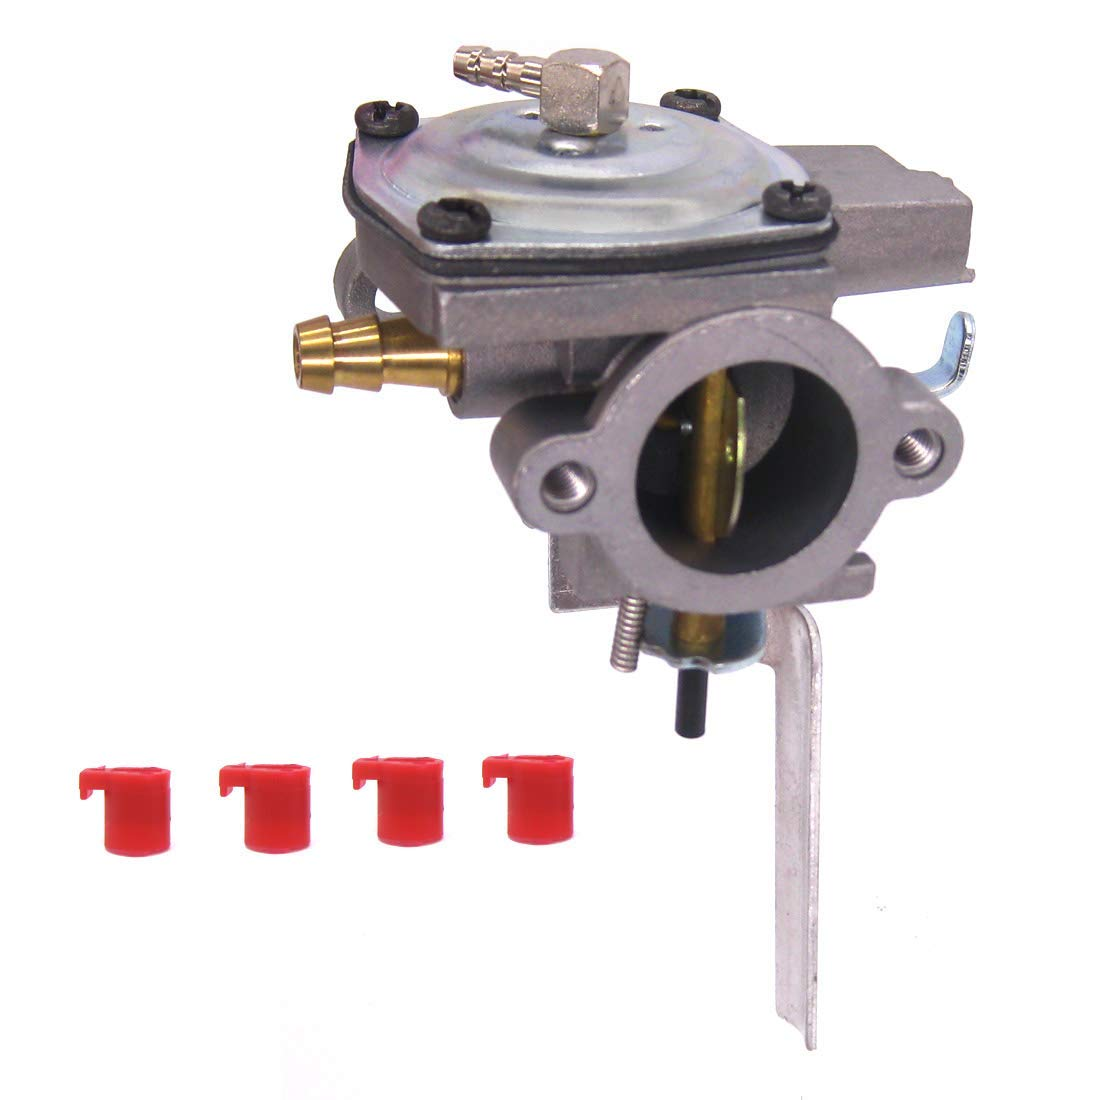 Get Quotations · Atoparts 640290 Carburetor Carb for Tecumseh AV520 TV085XA  2-Cycle Vertical Engine Motor Replaces 640263